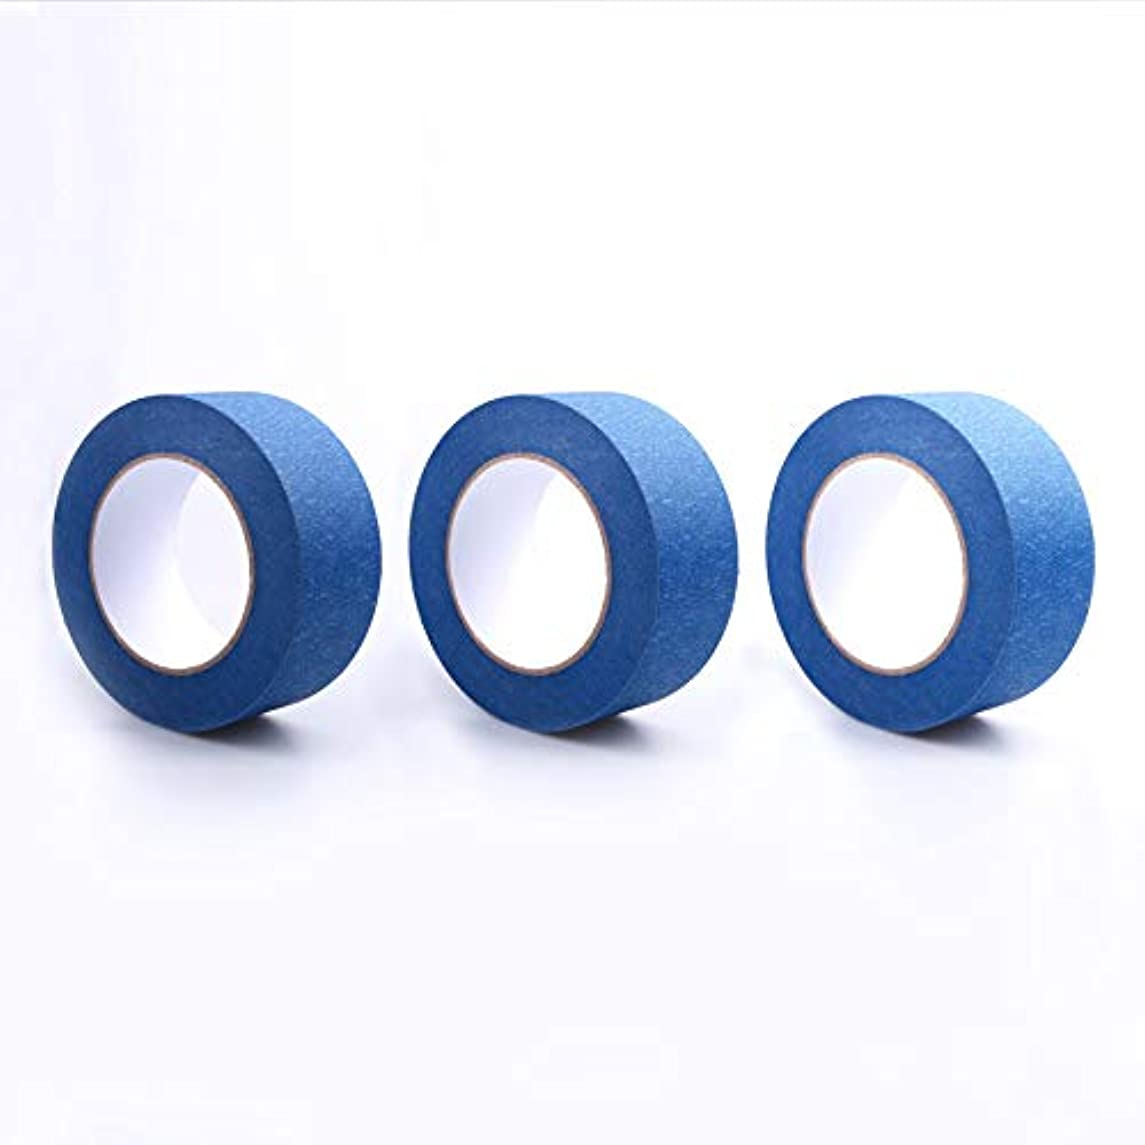 Blue Painters Tape Masking Tape/No Seeping/30 Days UV Resistant/0.94inch60yard(3pk)